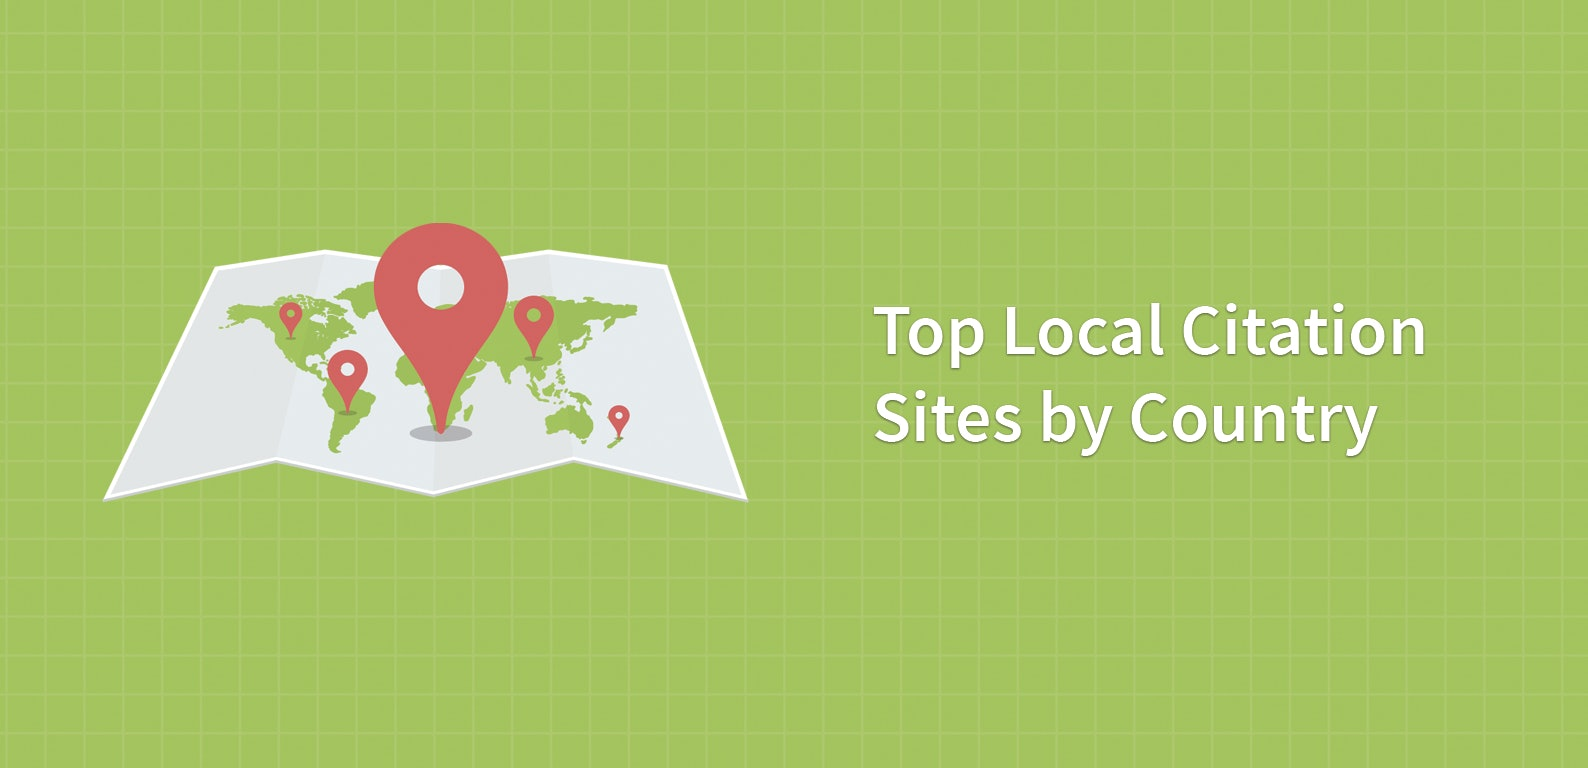 Top Local Citation Sites by Country